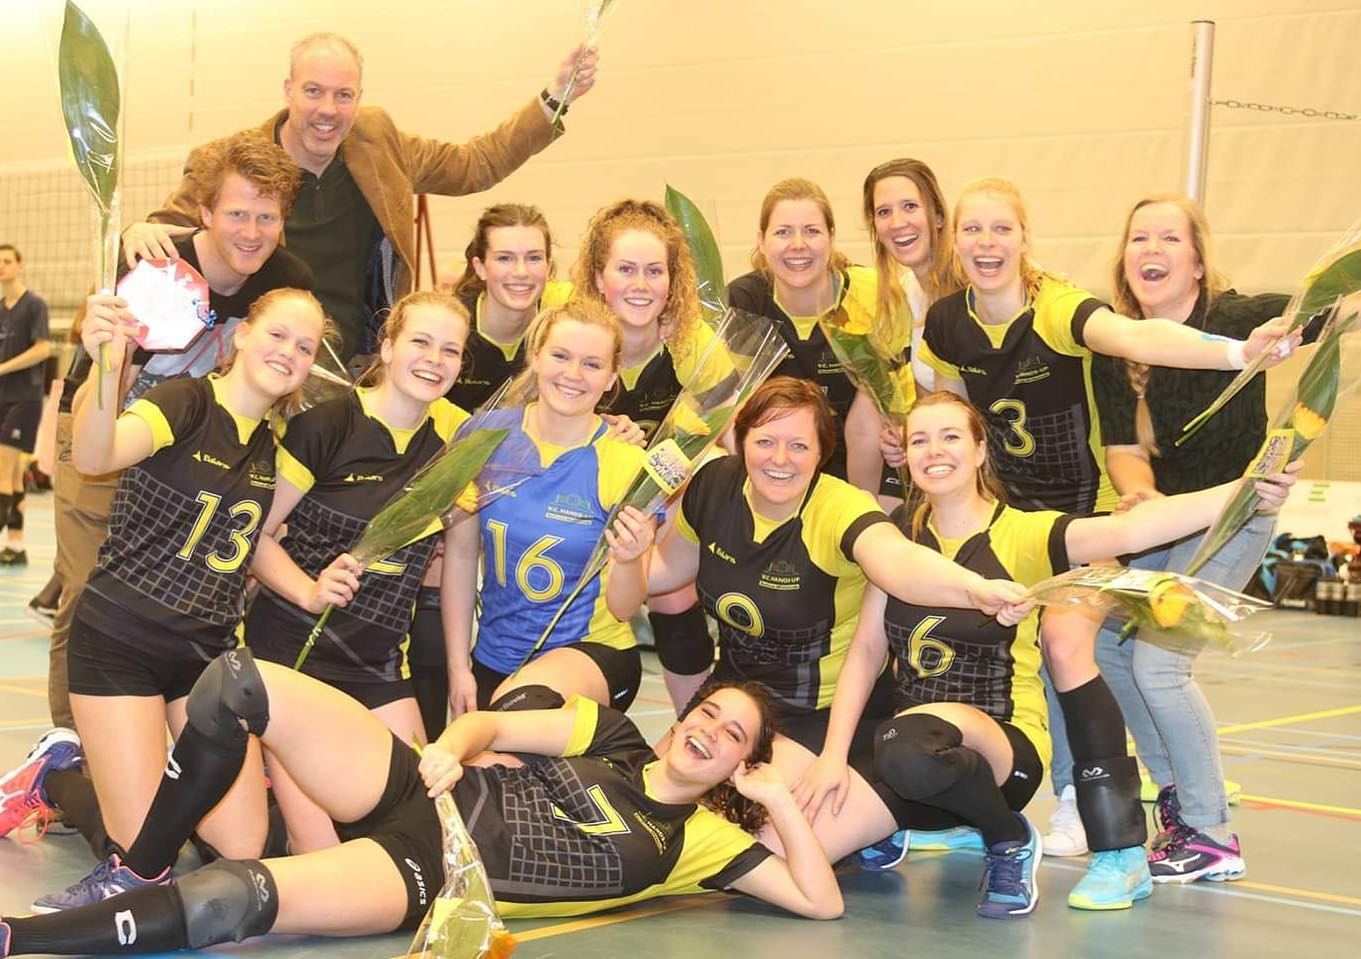 Hands-Up dames 2 kampioen